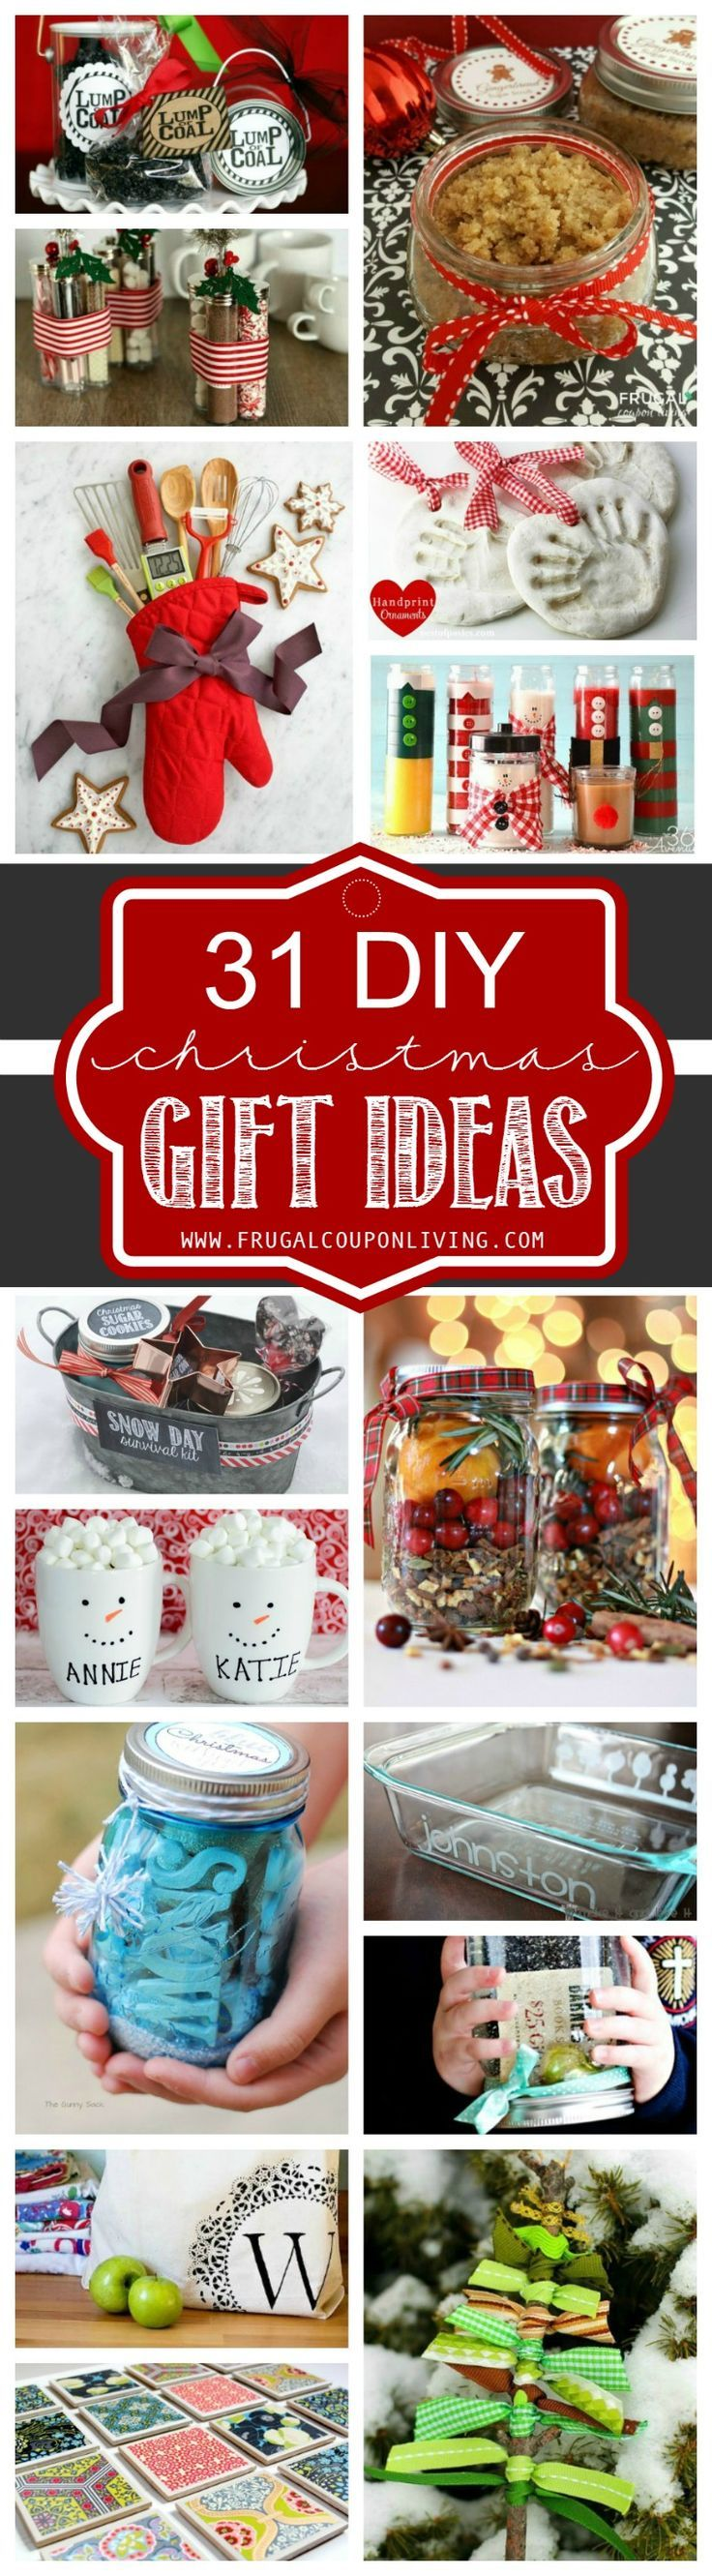 31 diy christmas gift ideas navidad regalitos y regalos para 31 diy christmas gift ideas solutioingenieria Choice Image